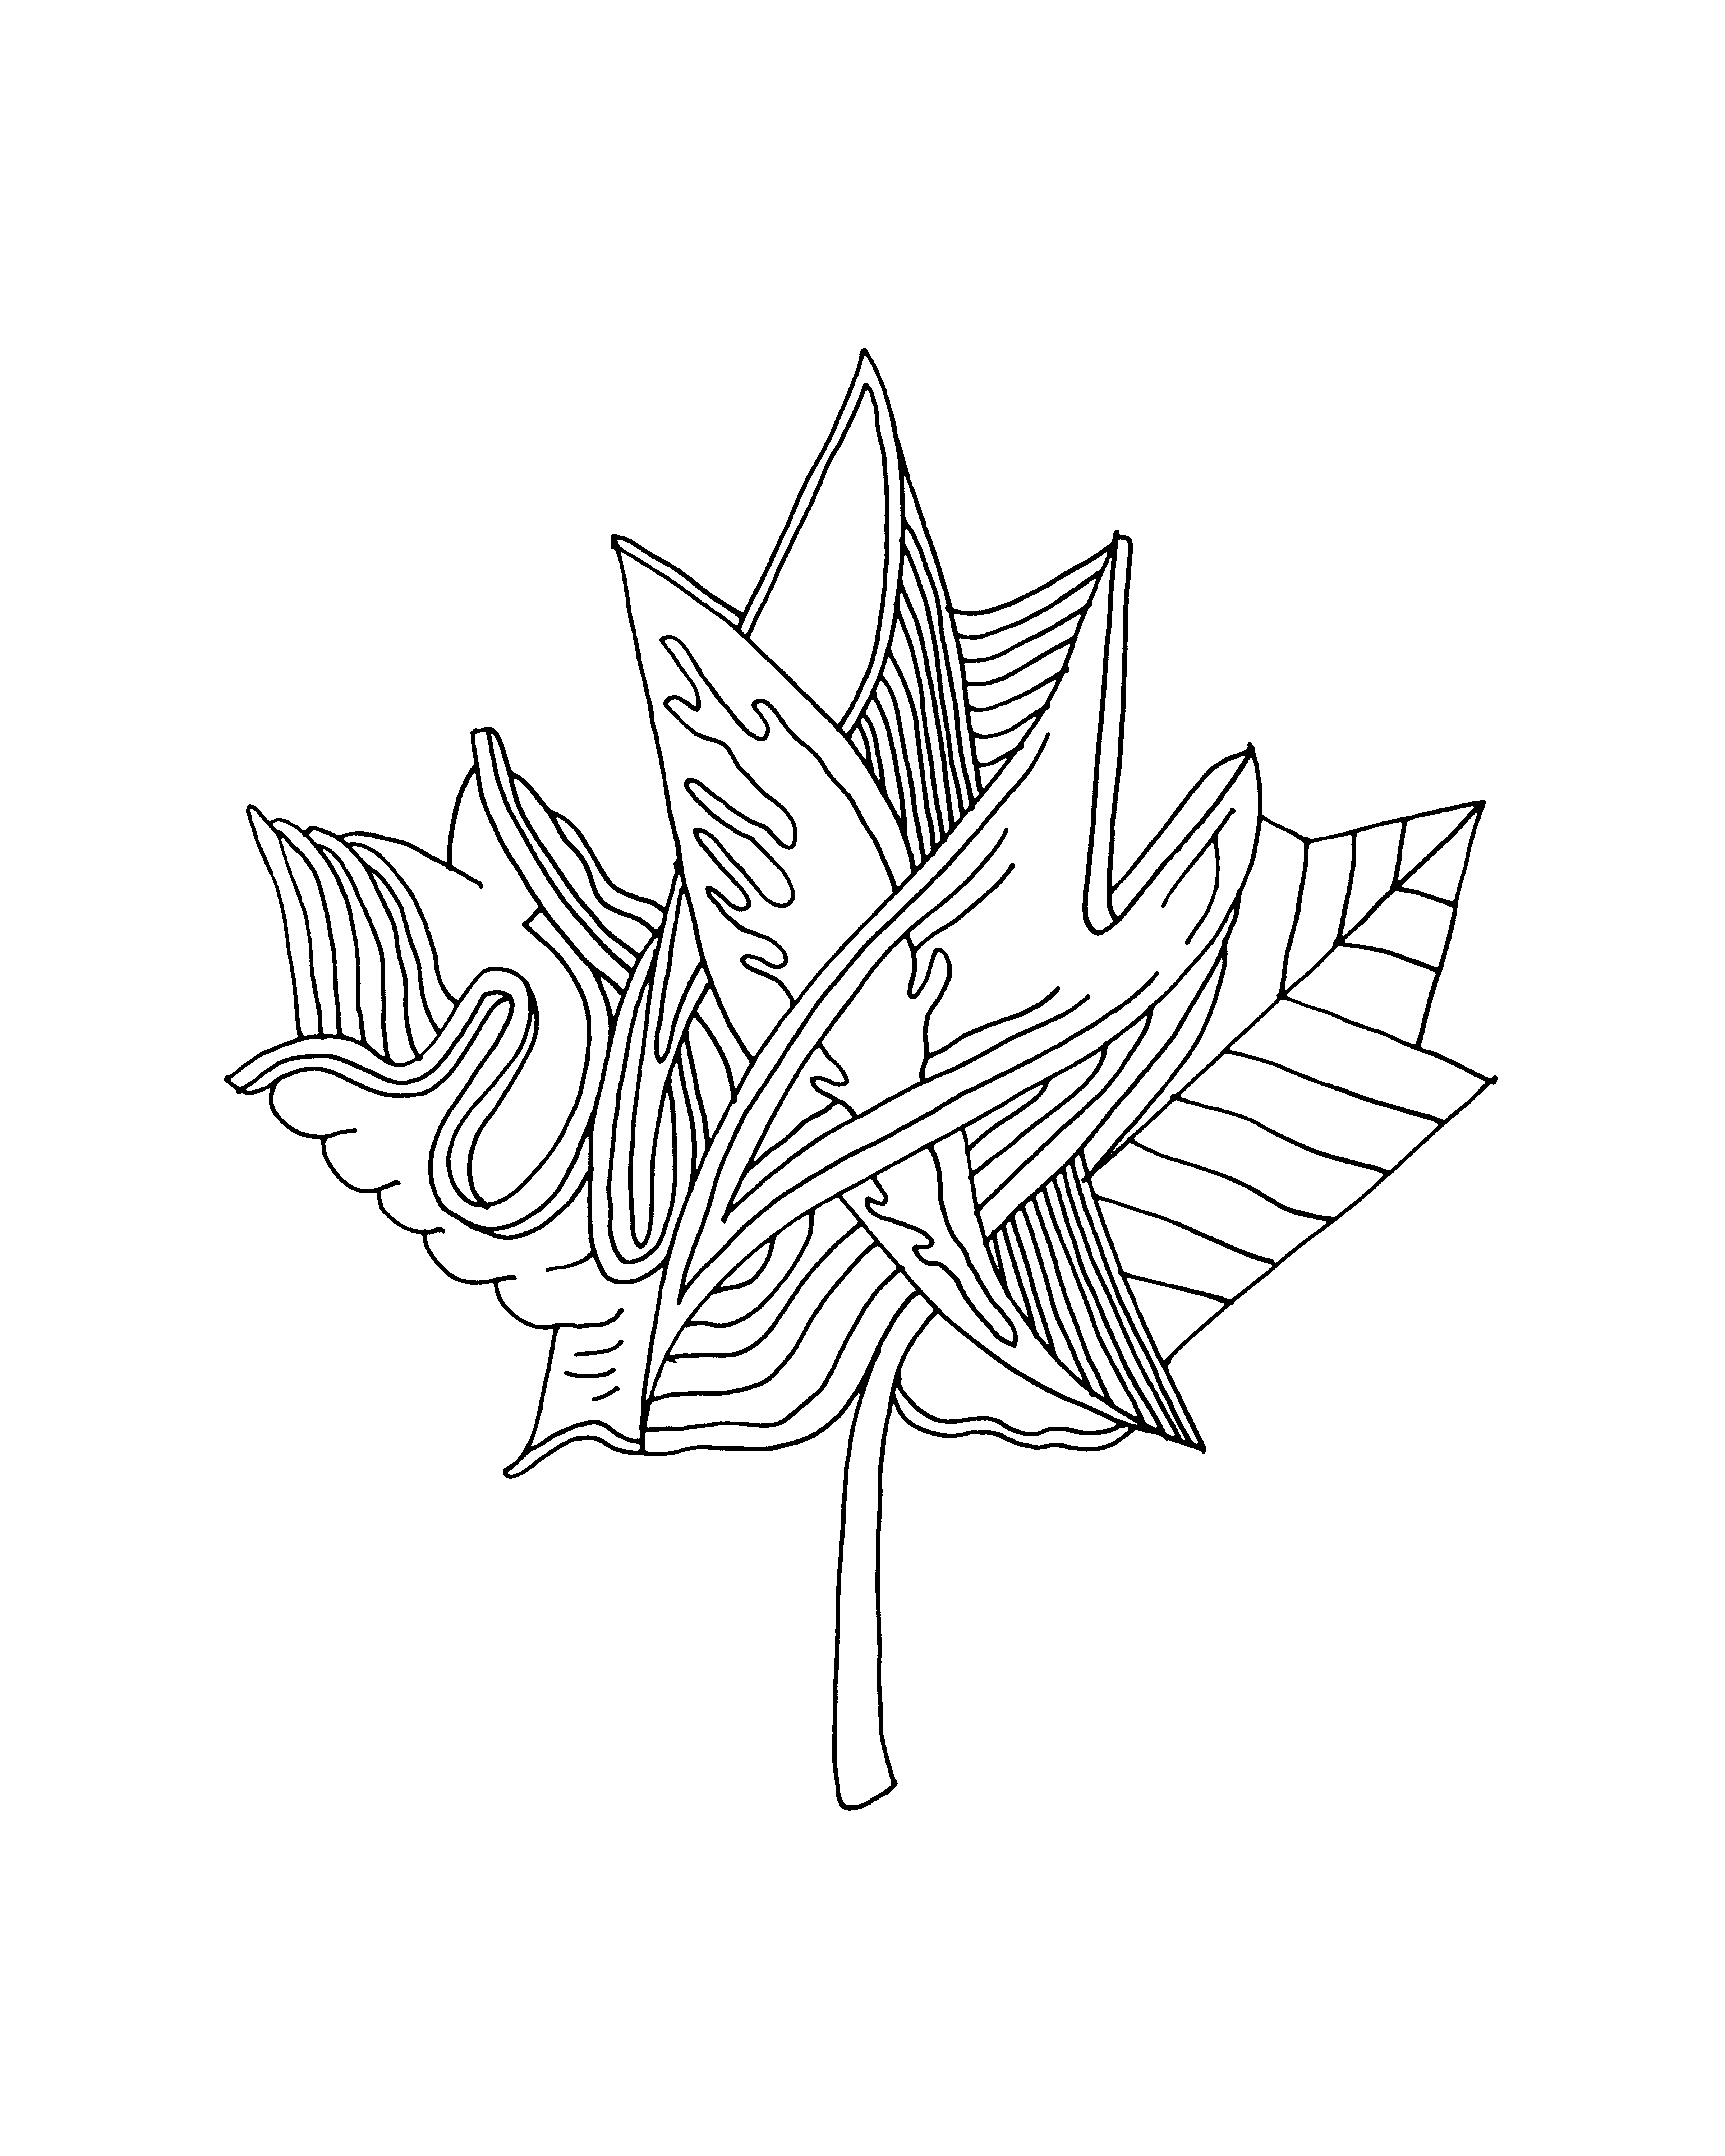 4800x6000 10,000 Pages Canadian Maple Leaf Colouring Page 5880